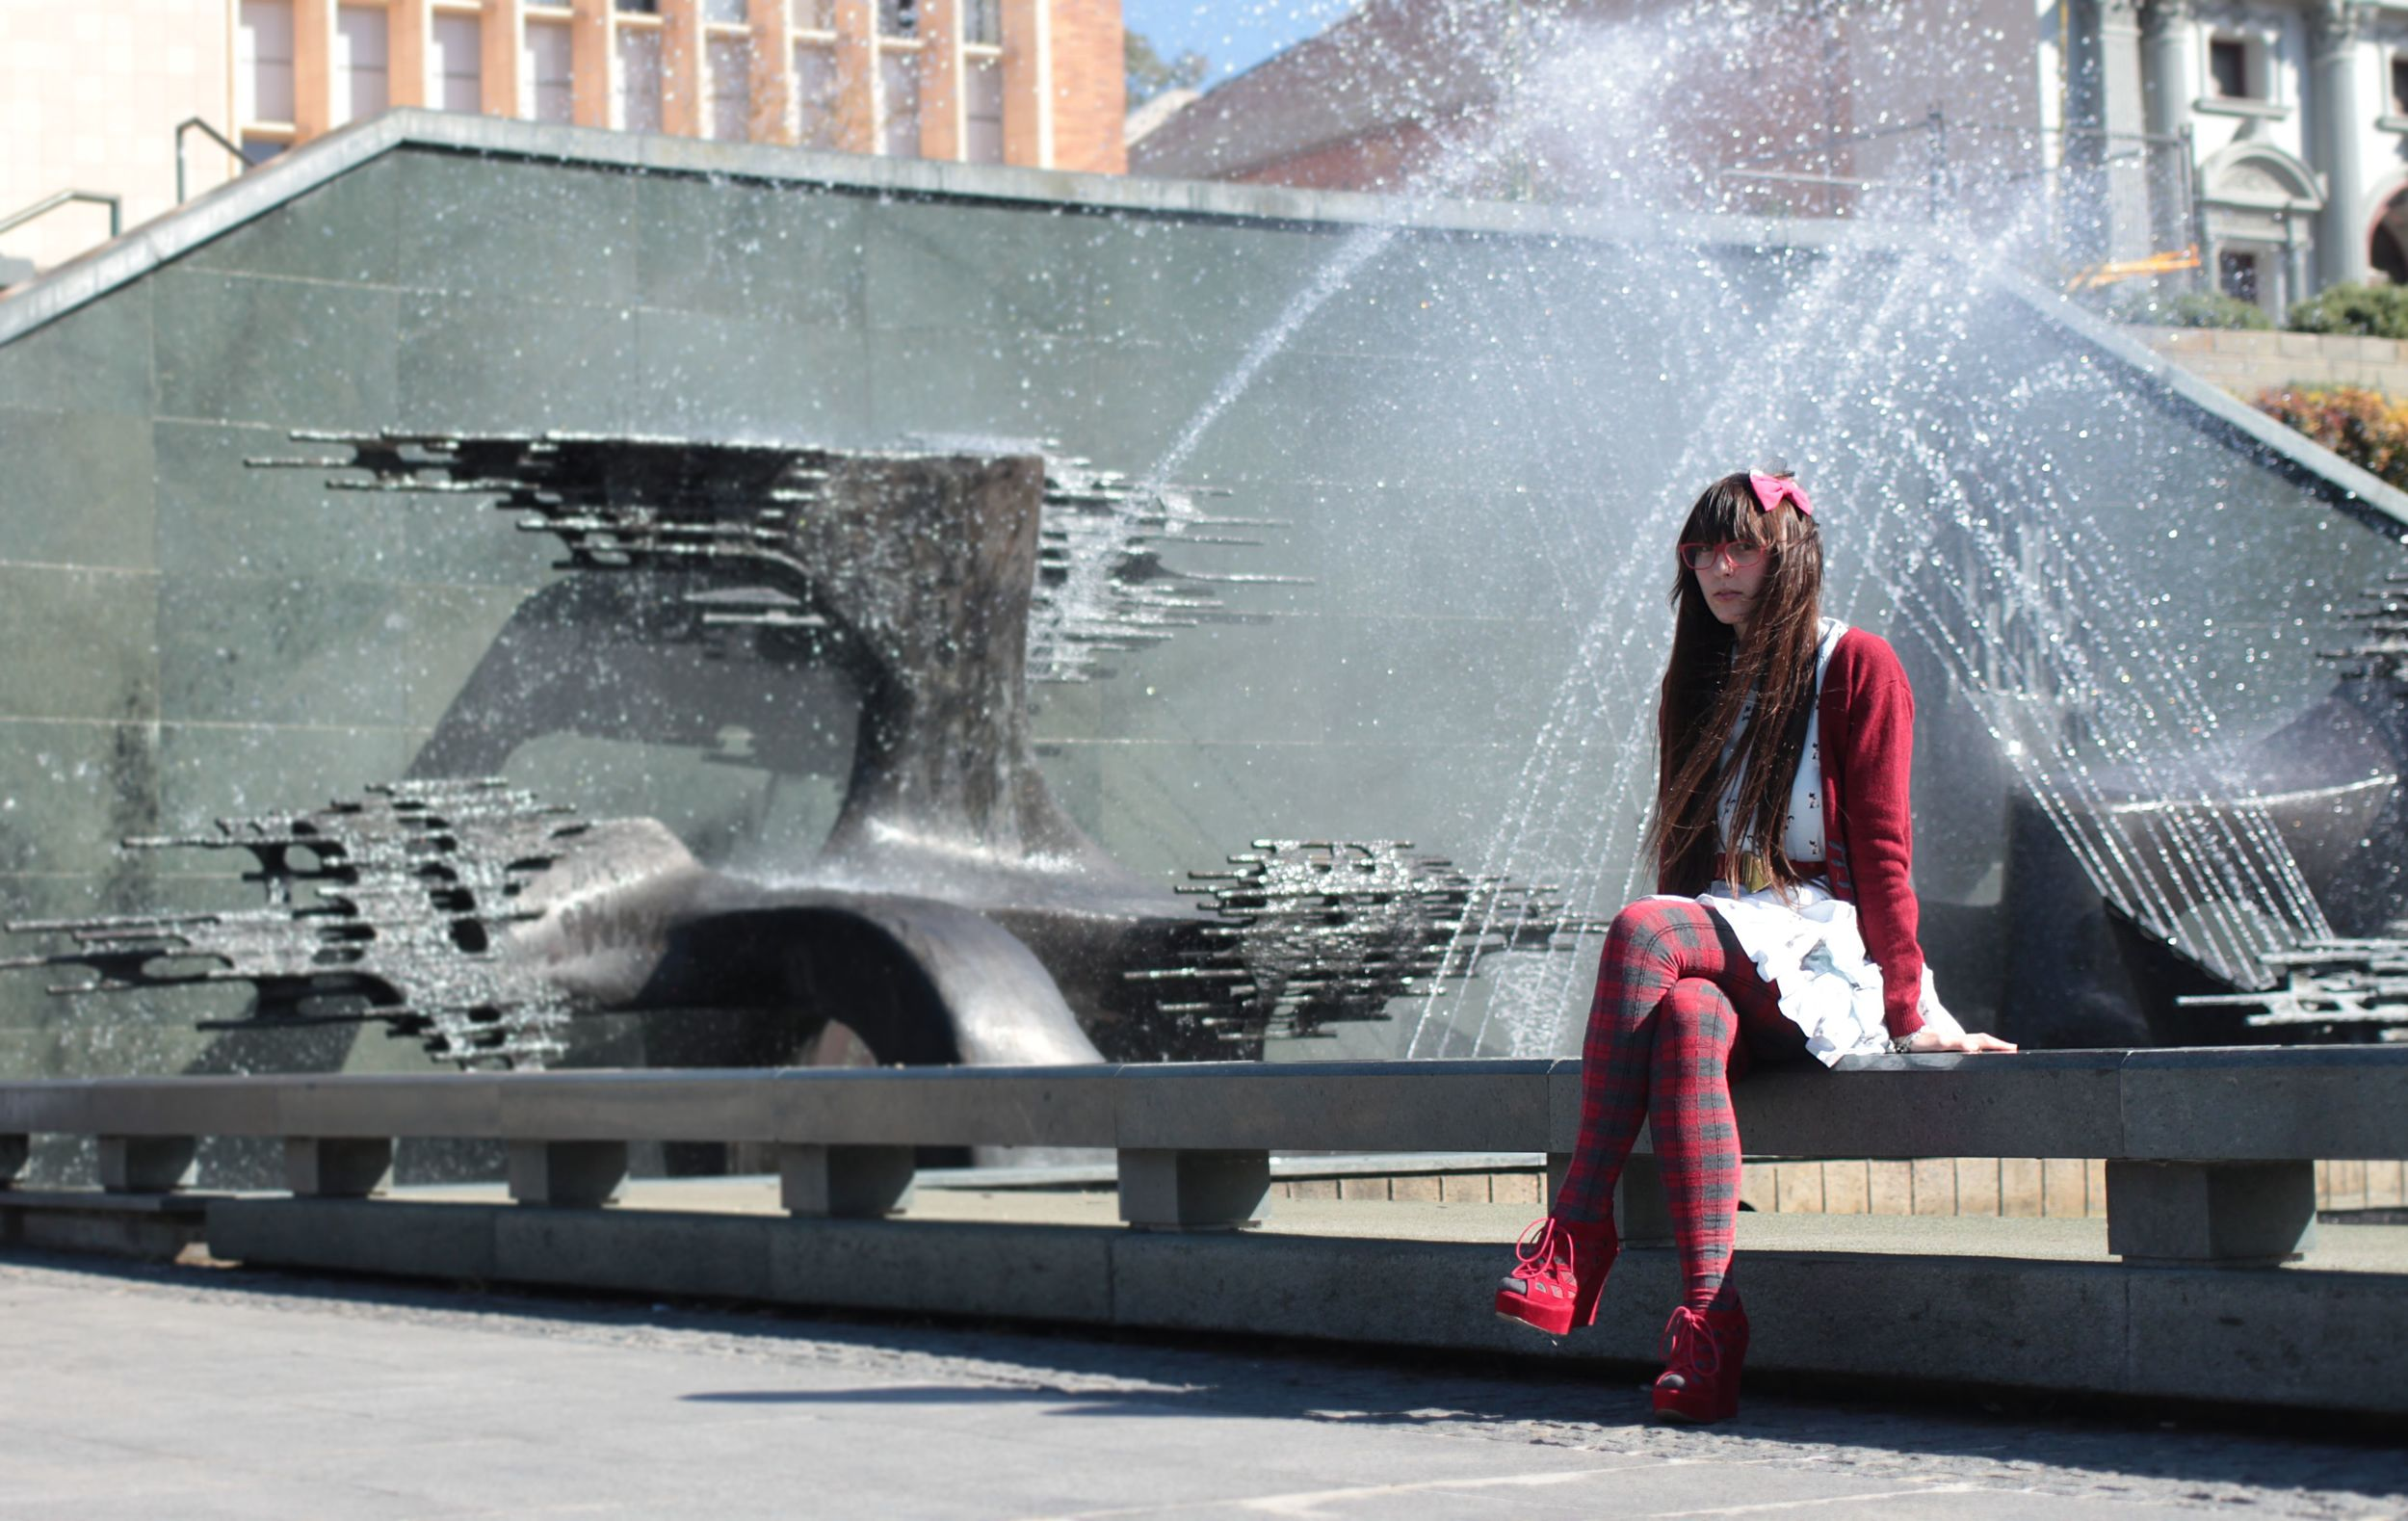 sittingby the fountain